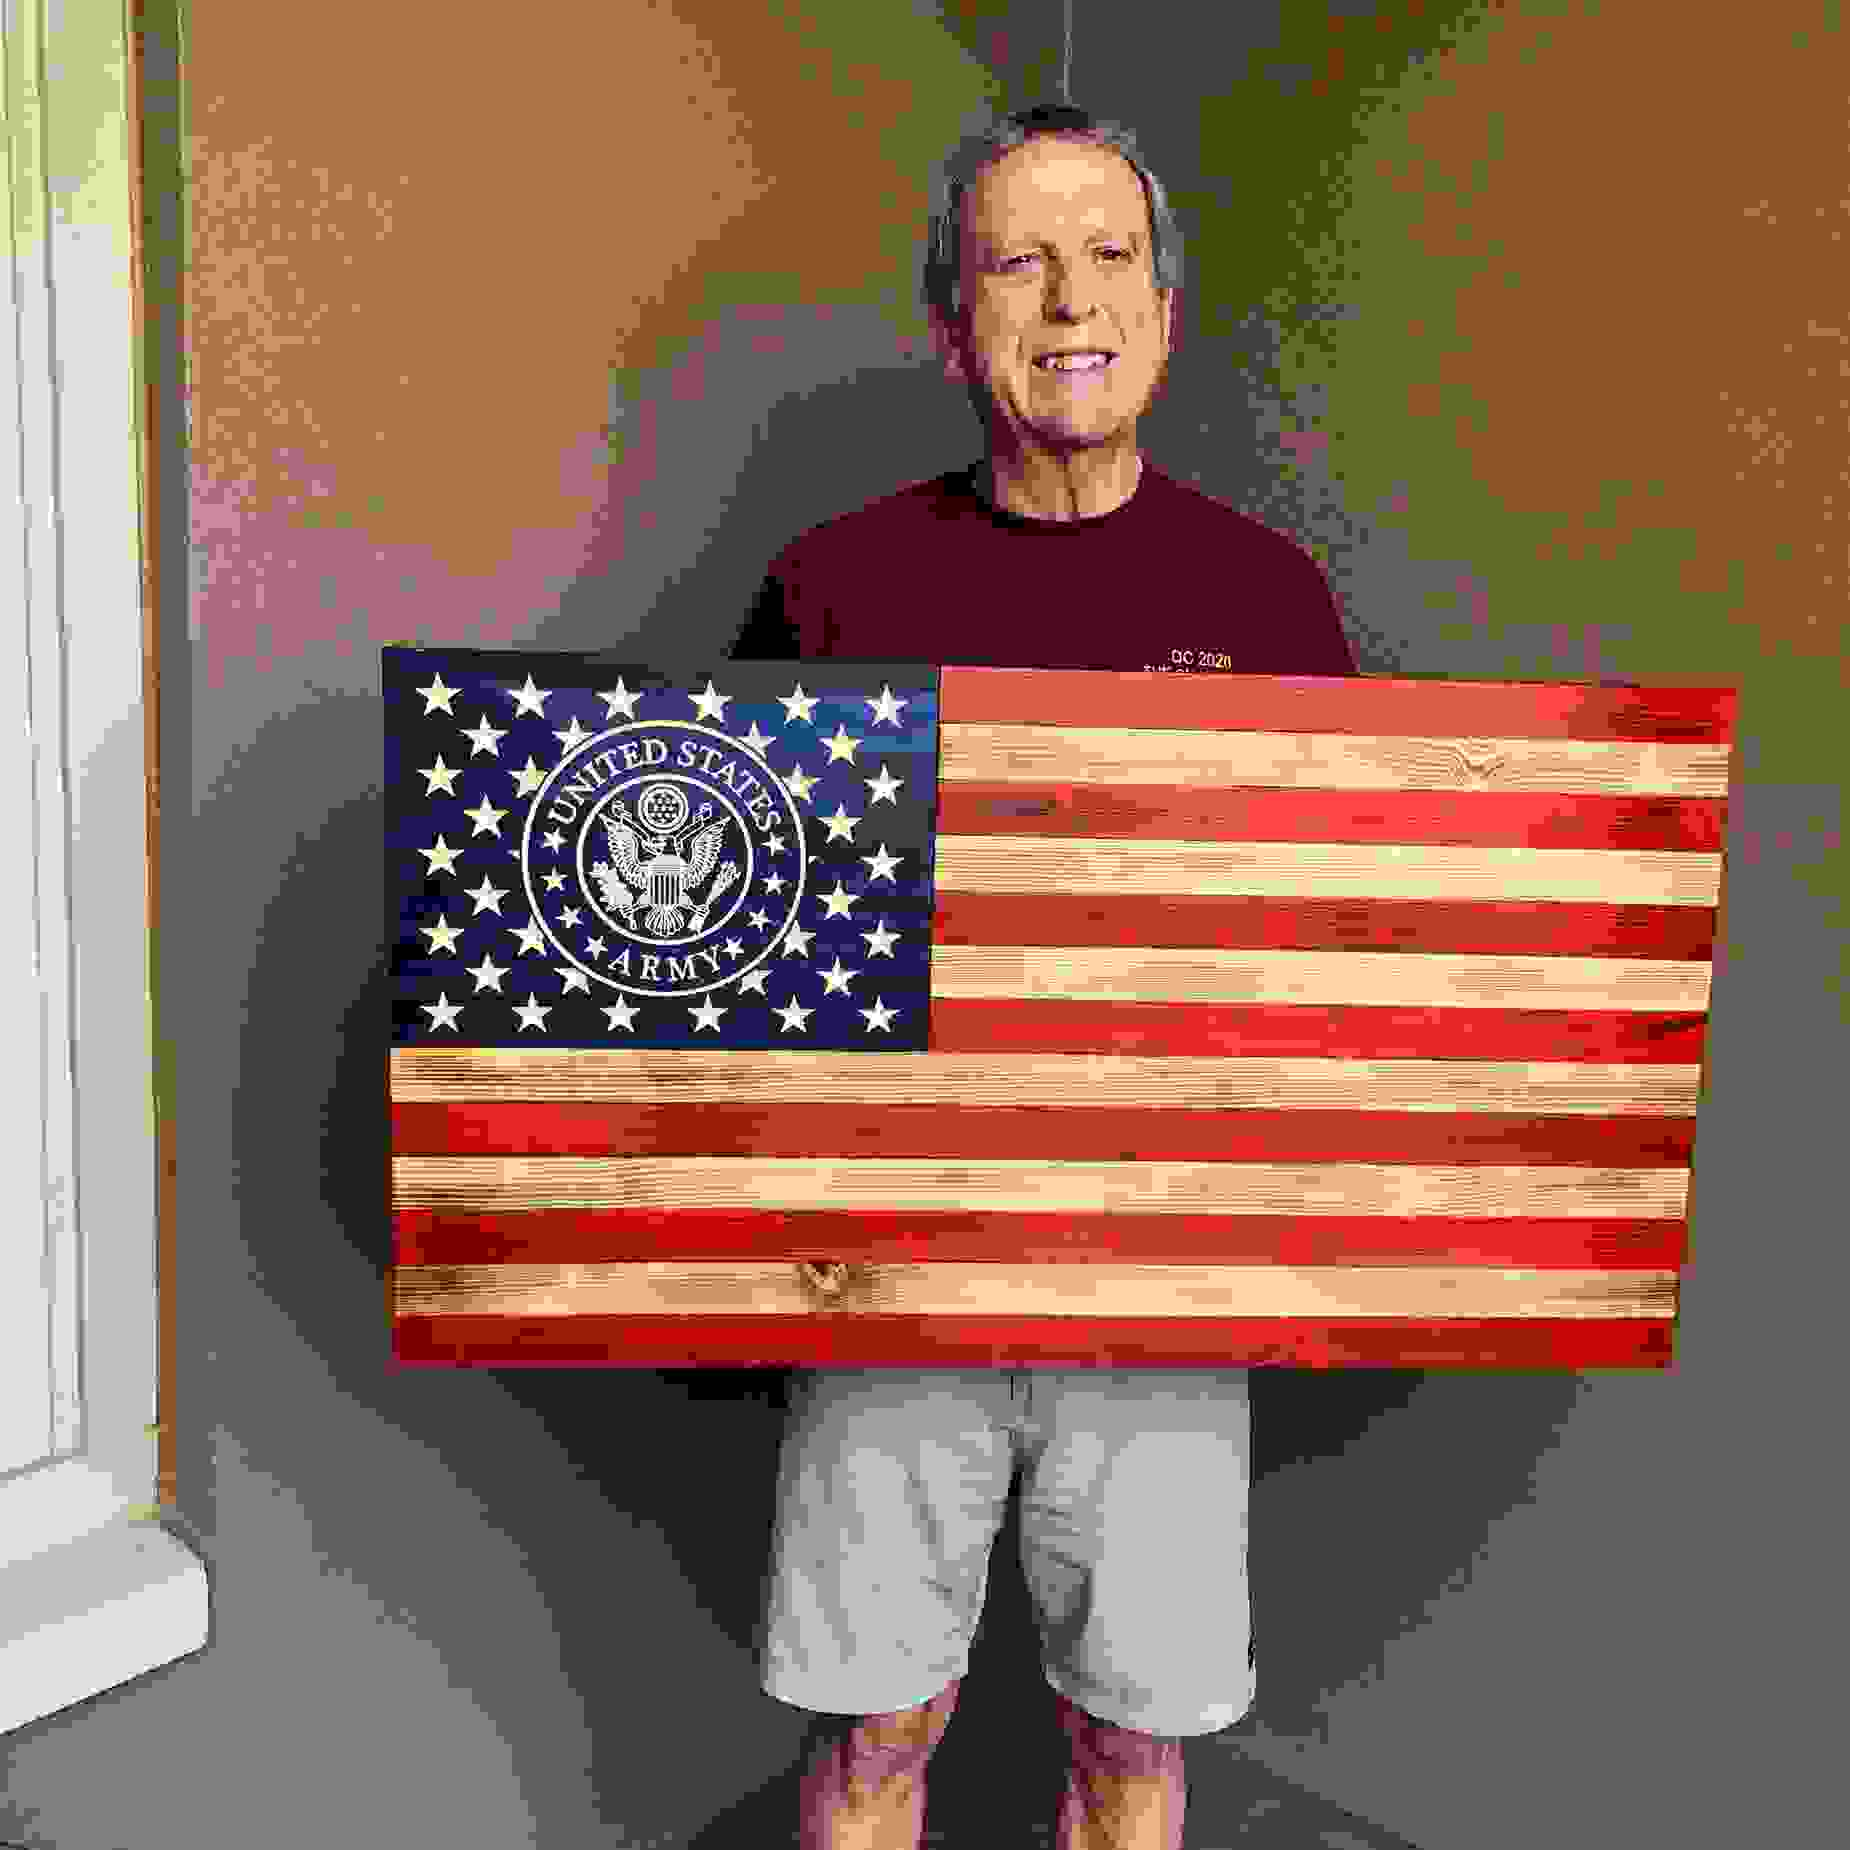 Proud vet holding his Army his rustic wooden flag.